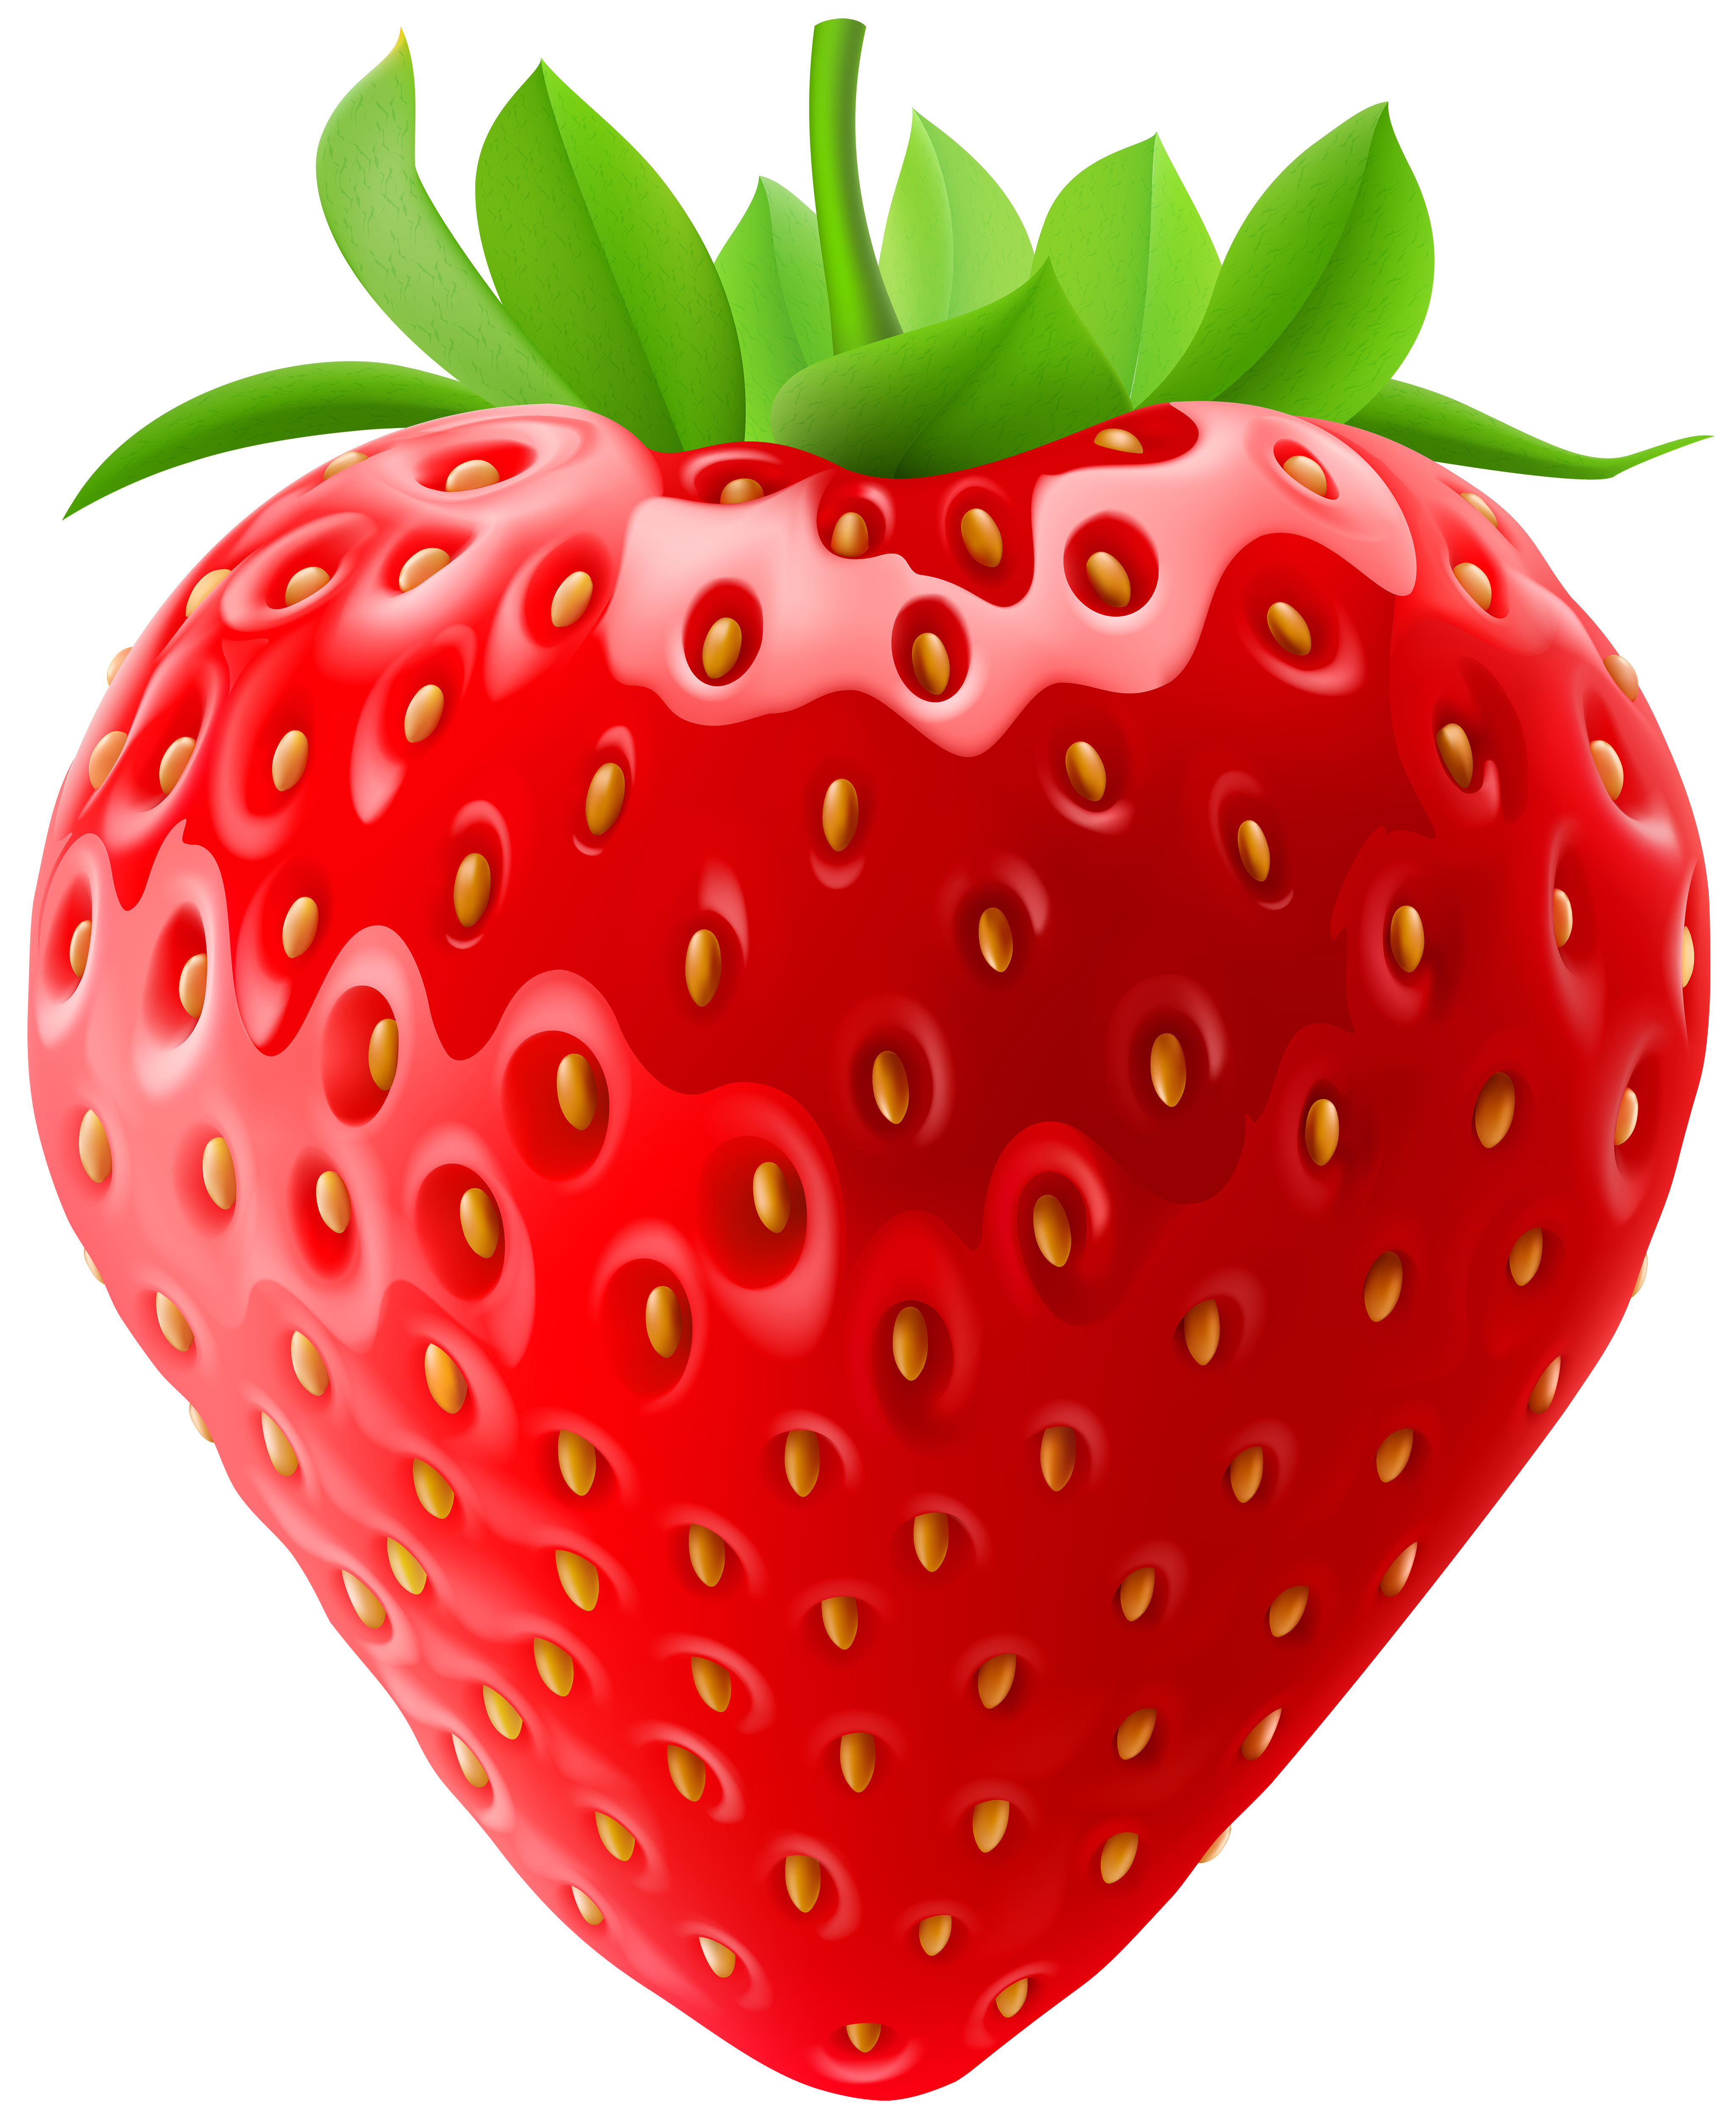 Strawberries clipart png. Strawberry clip art image